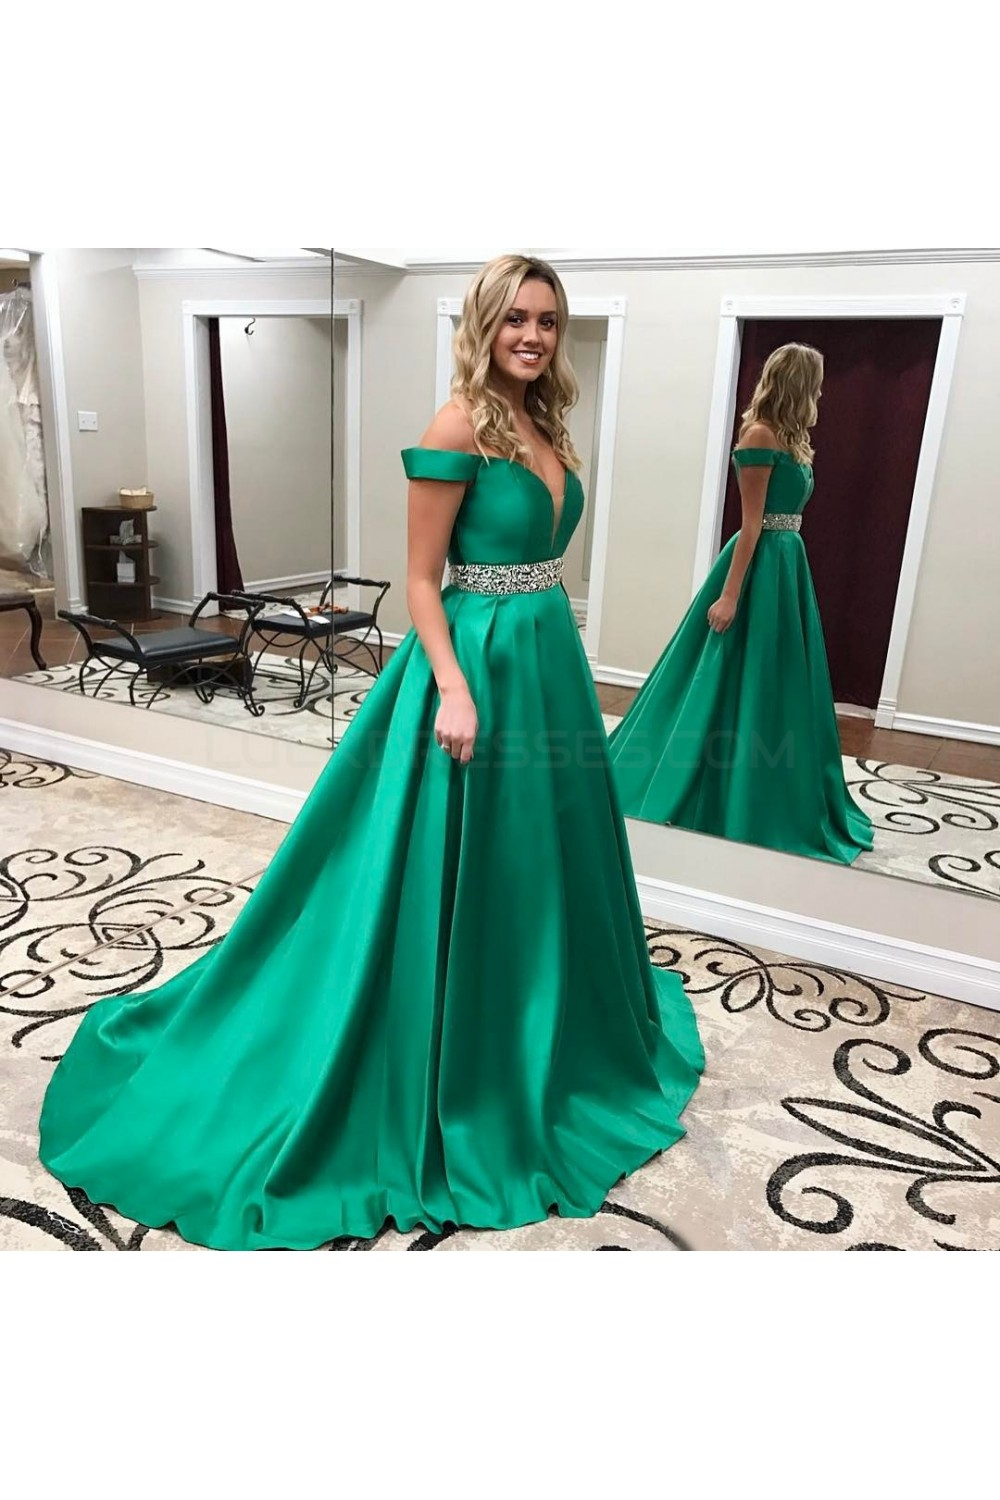 Beaded Long Green Off-the-Shoulder Prom Formal Evening Party Dresses ...